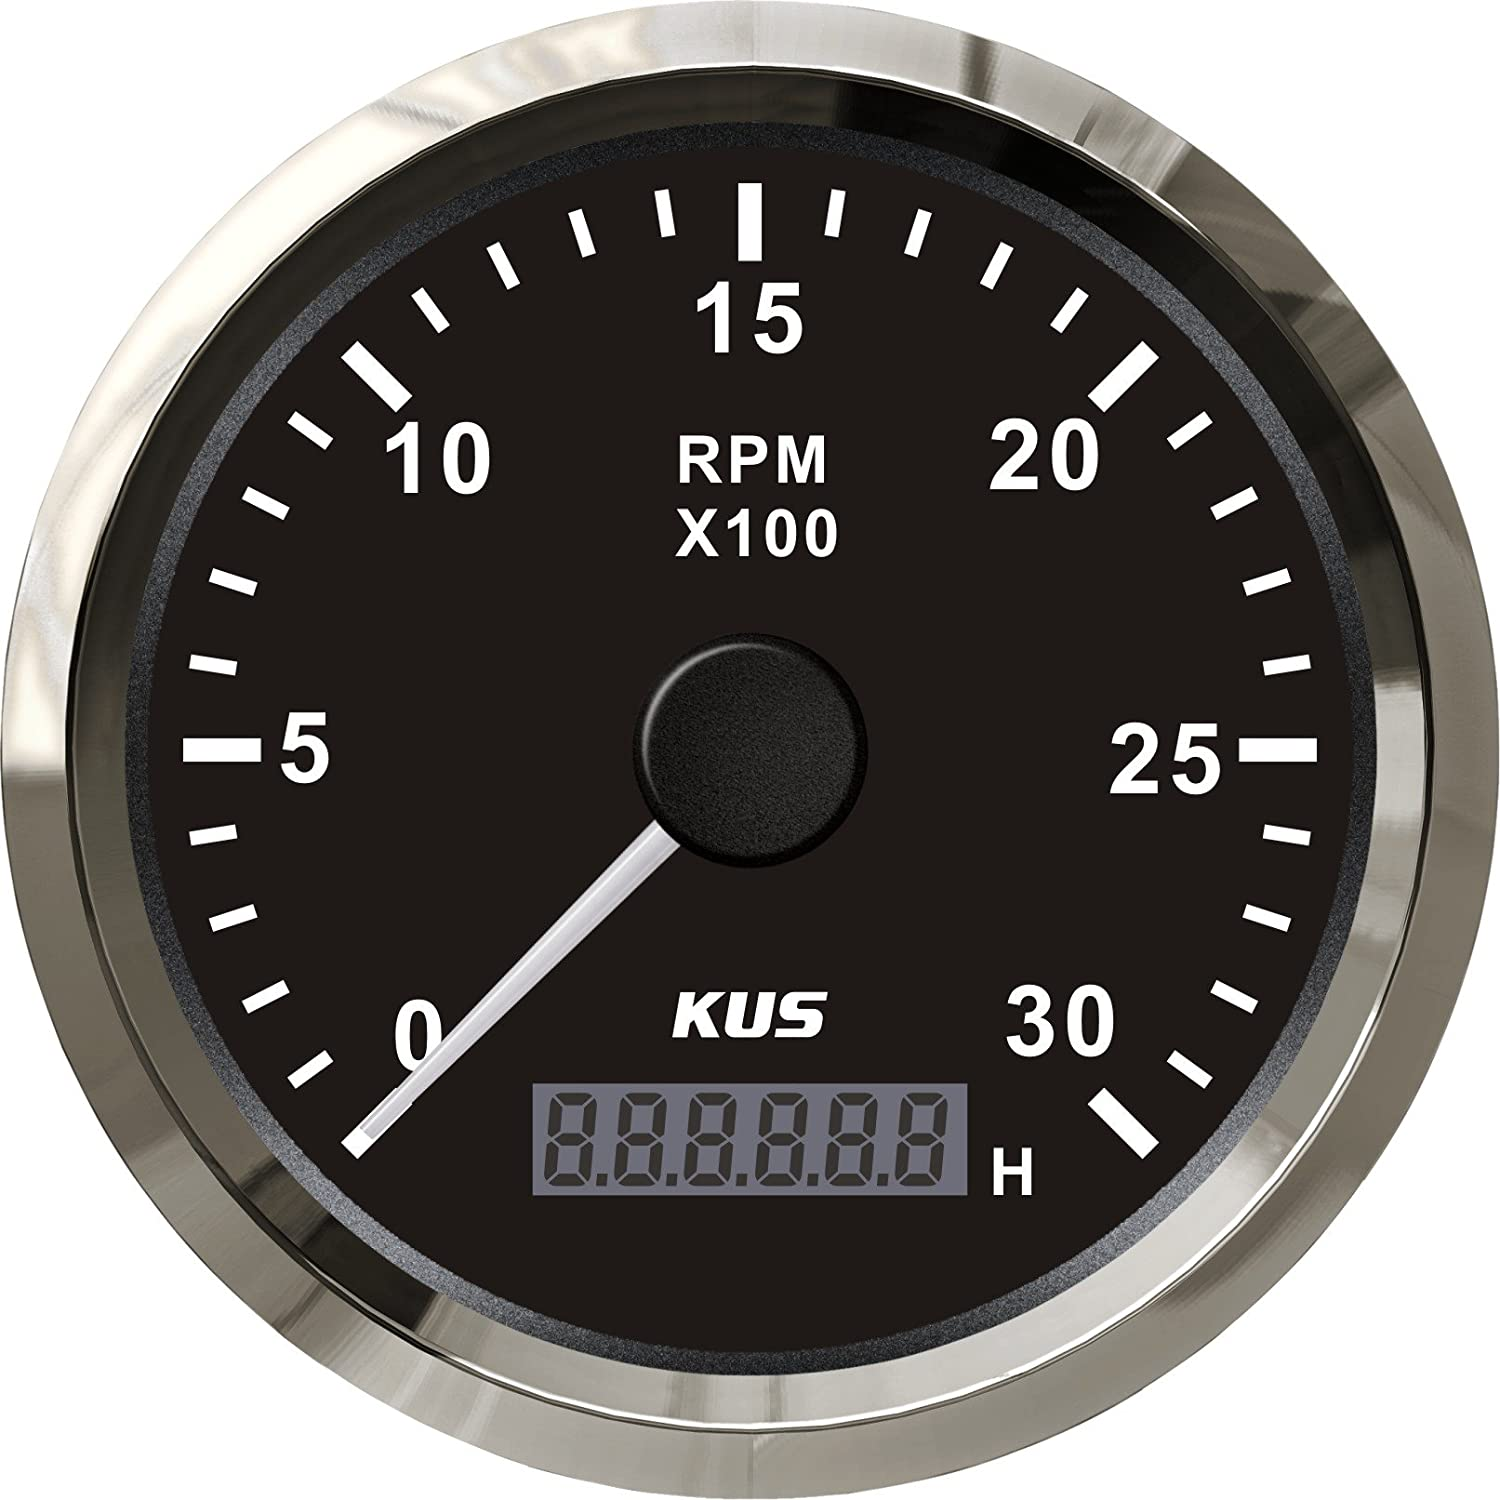 KUS Waterproof Tachometer REV Counter RPM Gauge with Hour Meter 3000RPM 85mm 12V//24V with Backlight